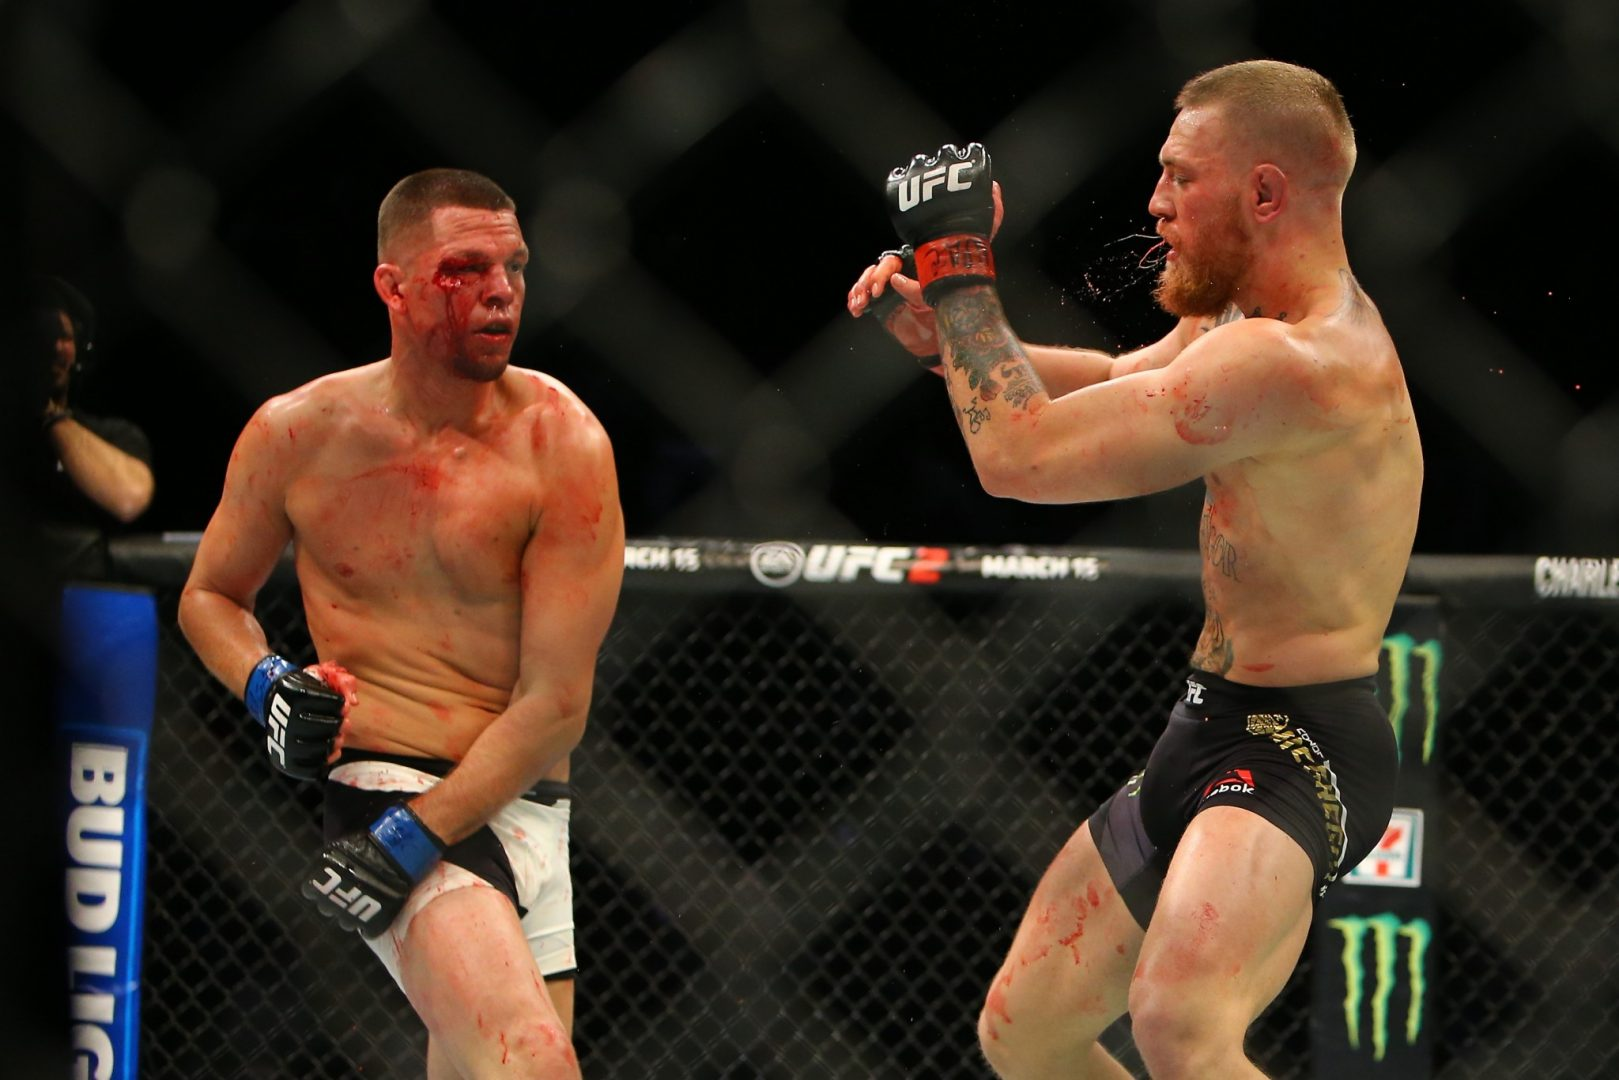 Conor McGregor during his UFC196 defeat by Nate Diaz